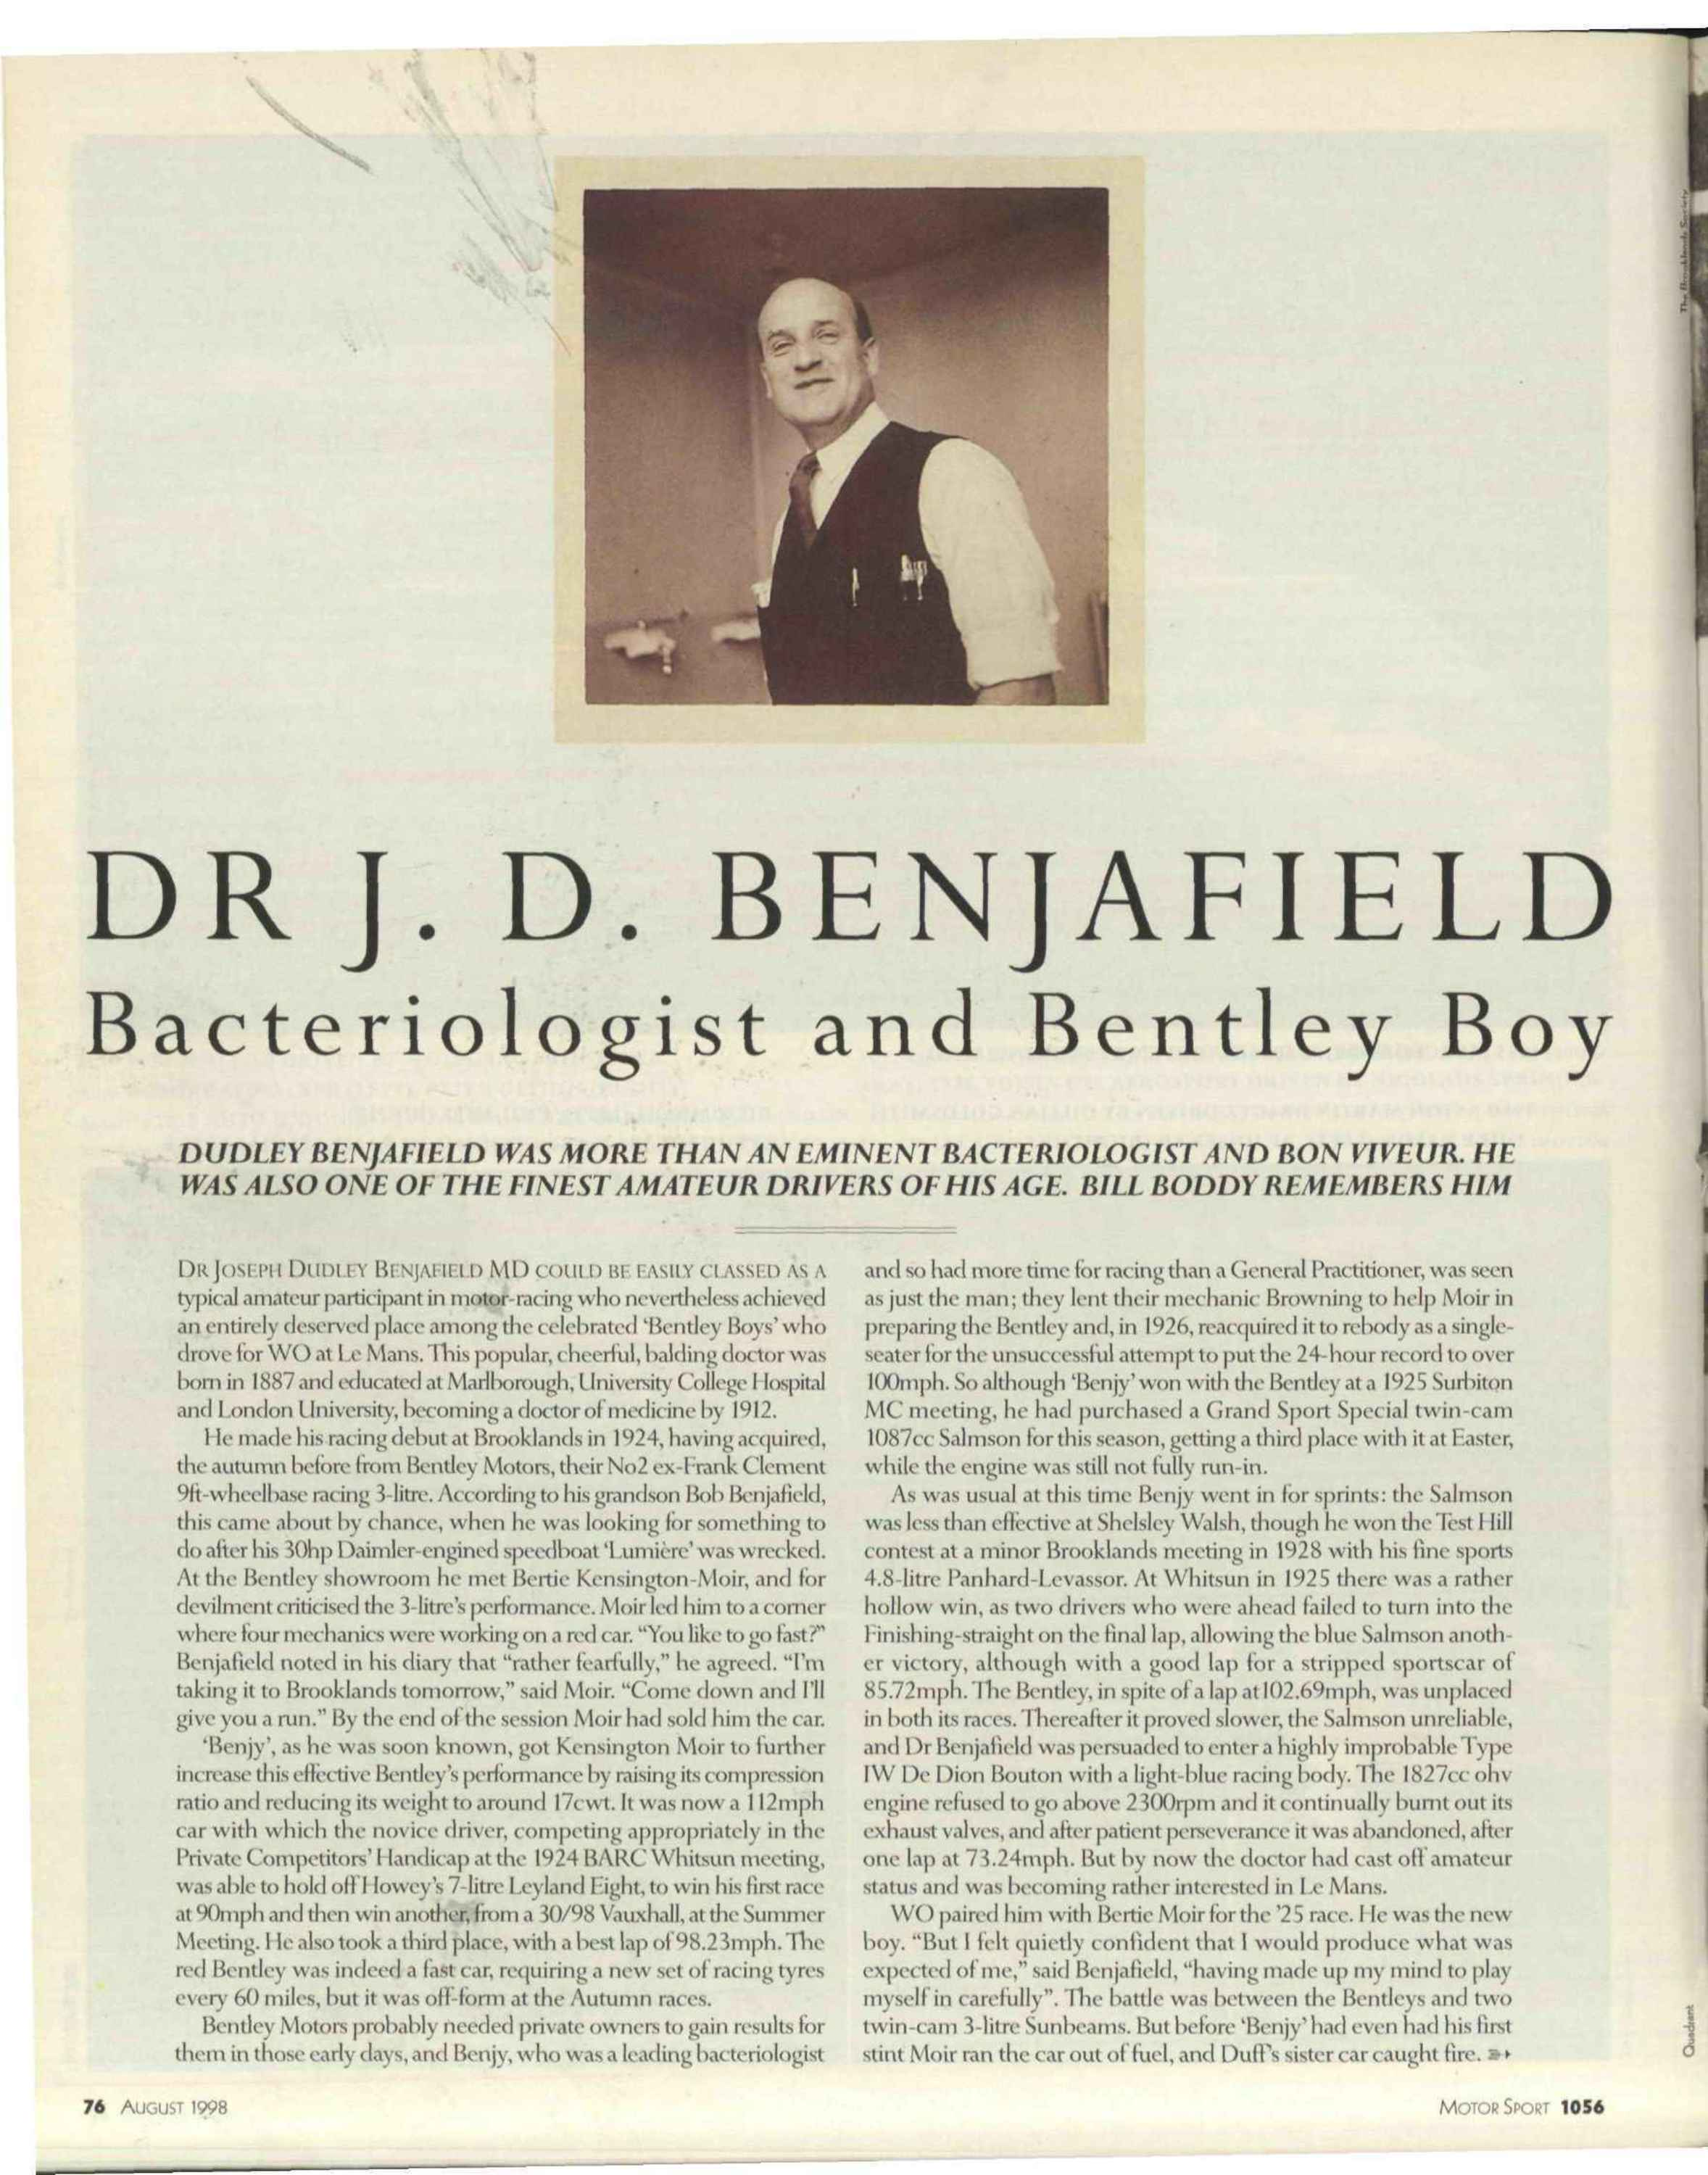 Dr J.D. Benjafield   Bacteriologist and Bentley Boy image